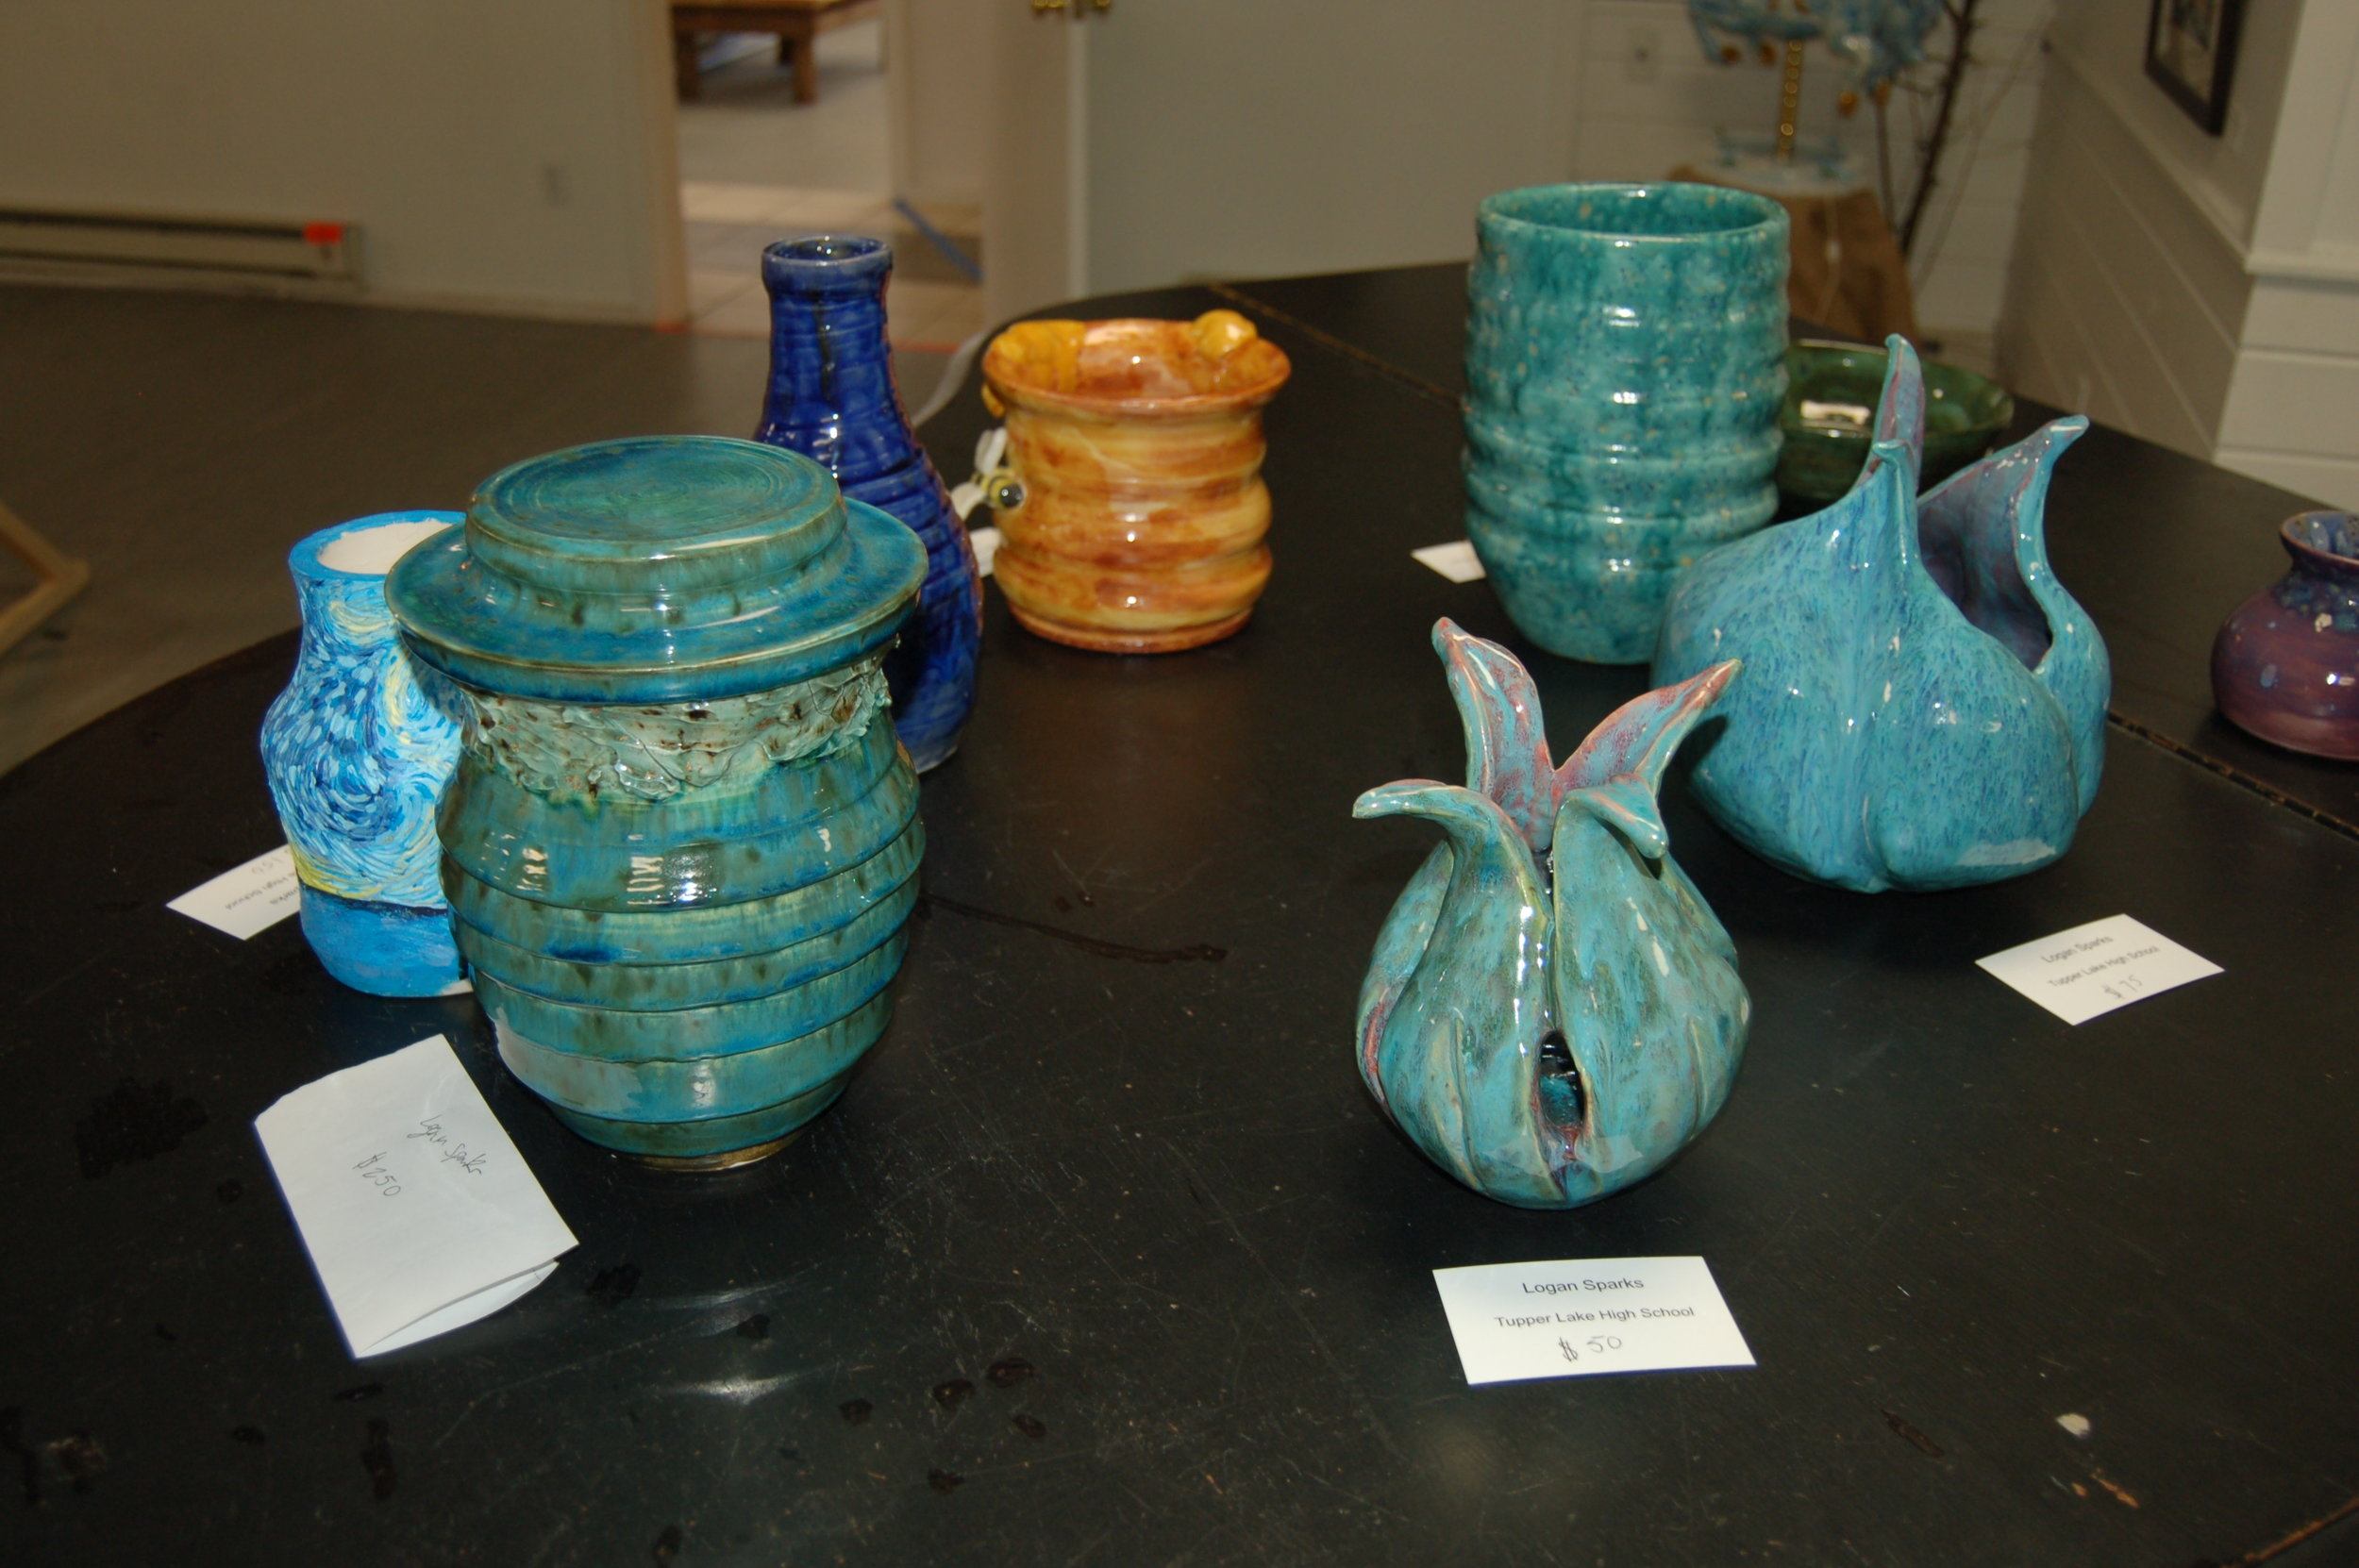 Pottery made by Tupper Lake High School student, Logan Sparks